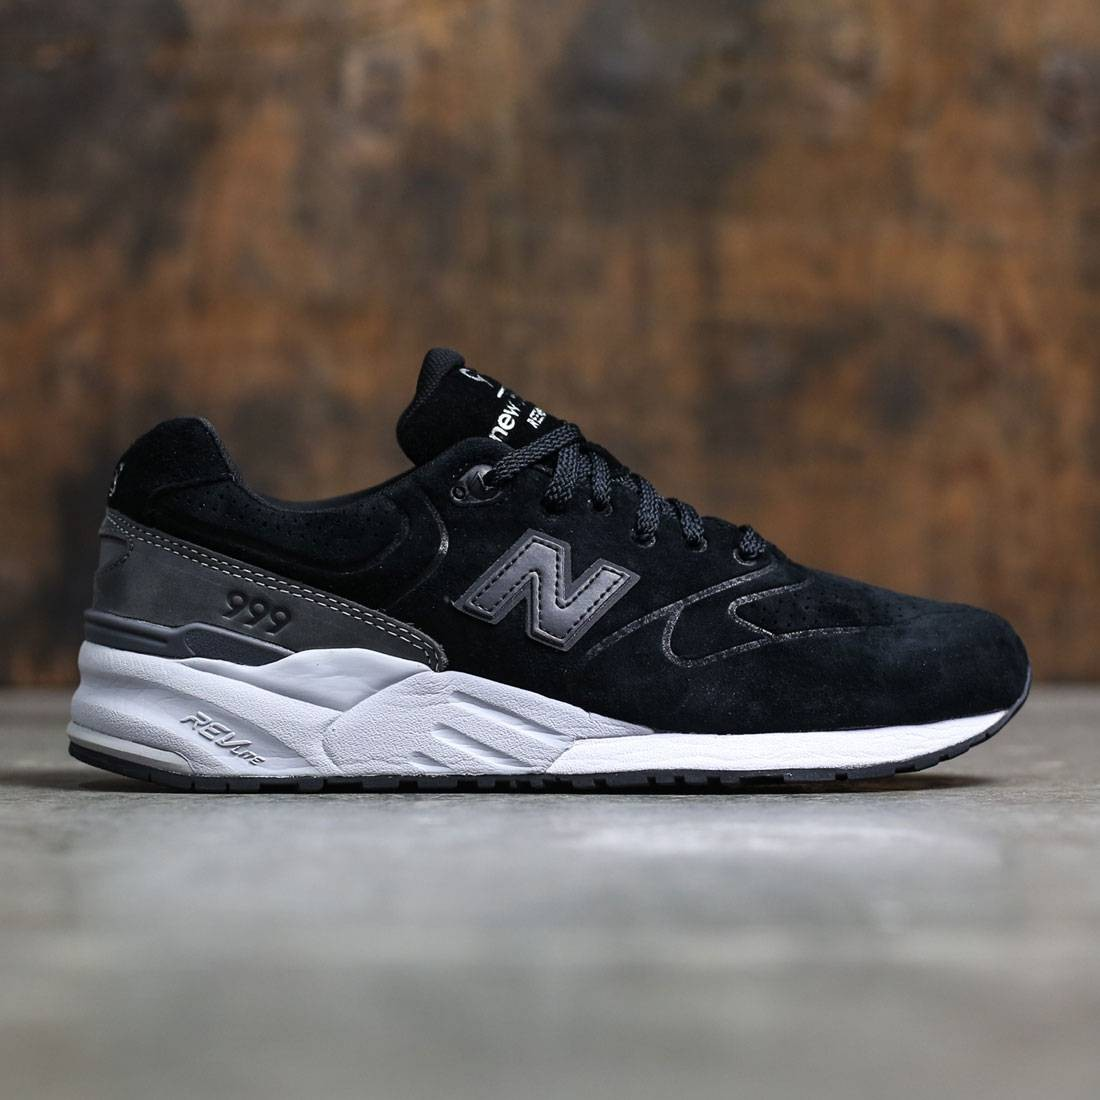 new balance black grey